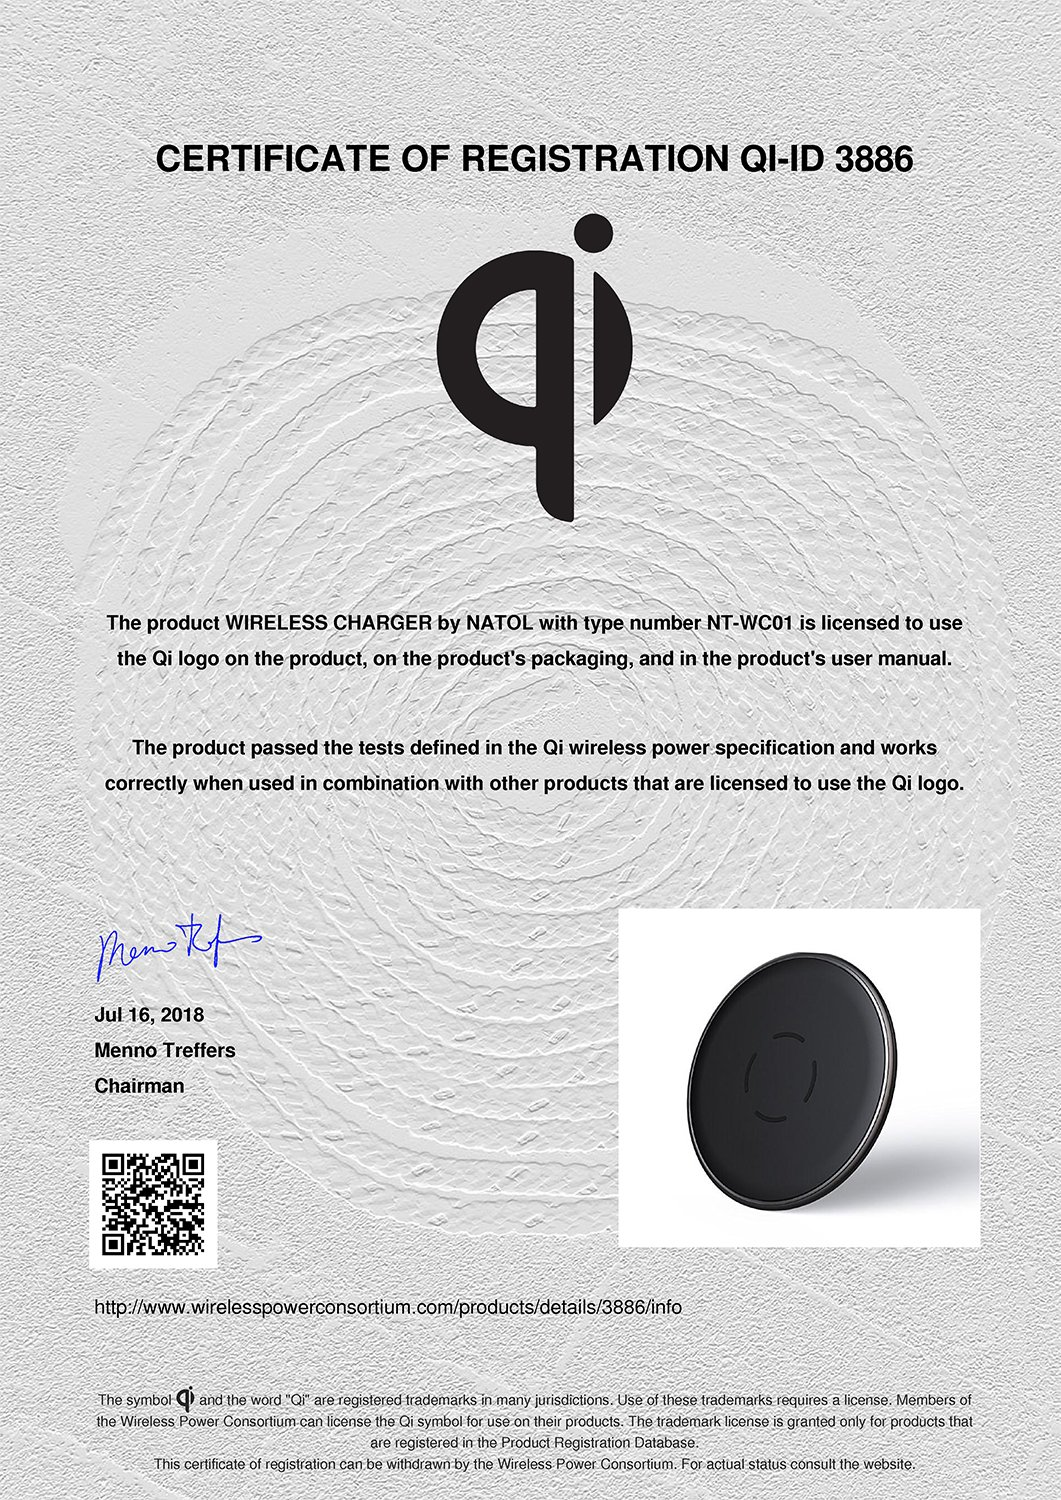 NATOL Wireless Charger, Qi-Certified Wireless Charging Pad for Samsung Galaxy S9Plus/S9/S8/ Note 8/ S7, iPhone X/8/8 Plus, Other Qi-Enabled Devices